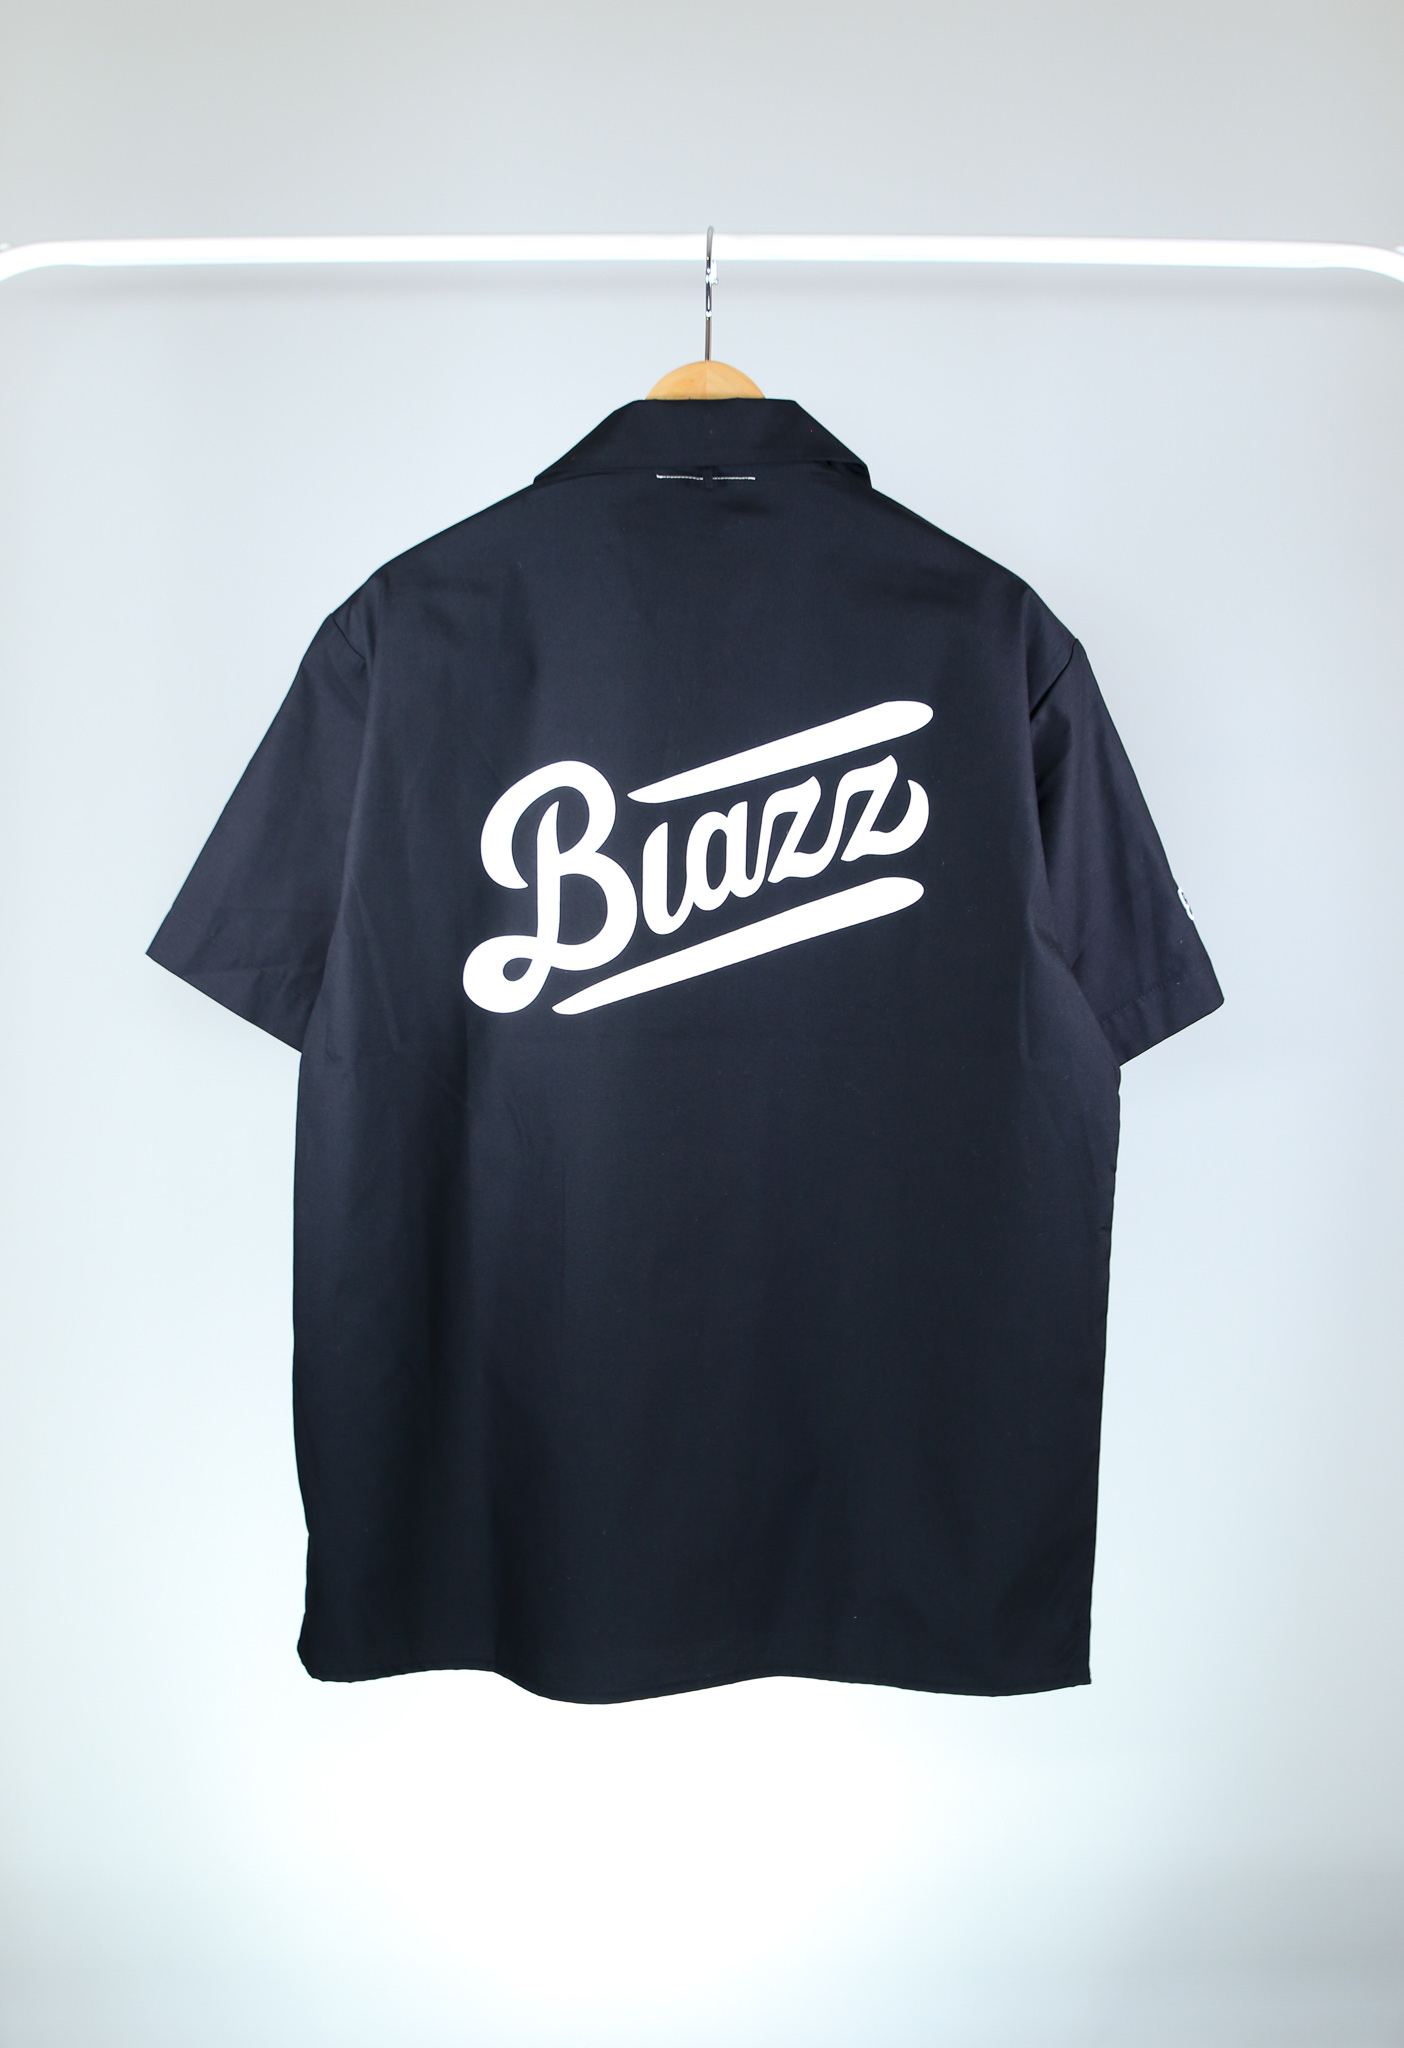 LOGO T/C OPEN SHIRT [BLACK]